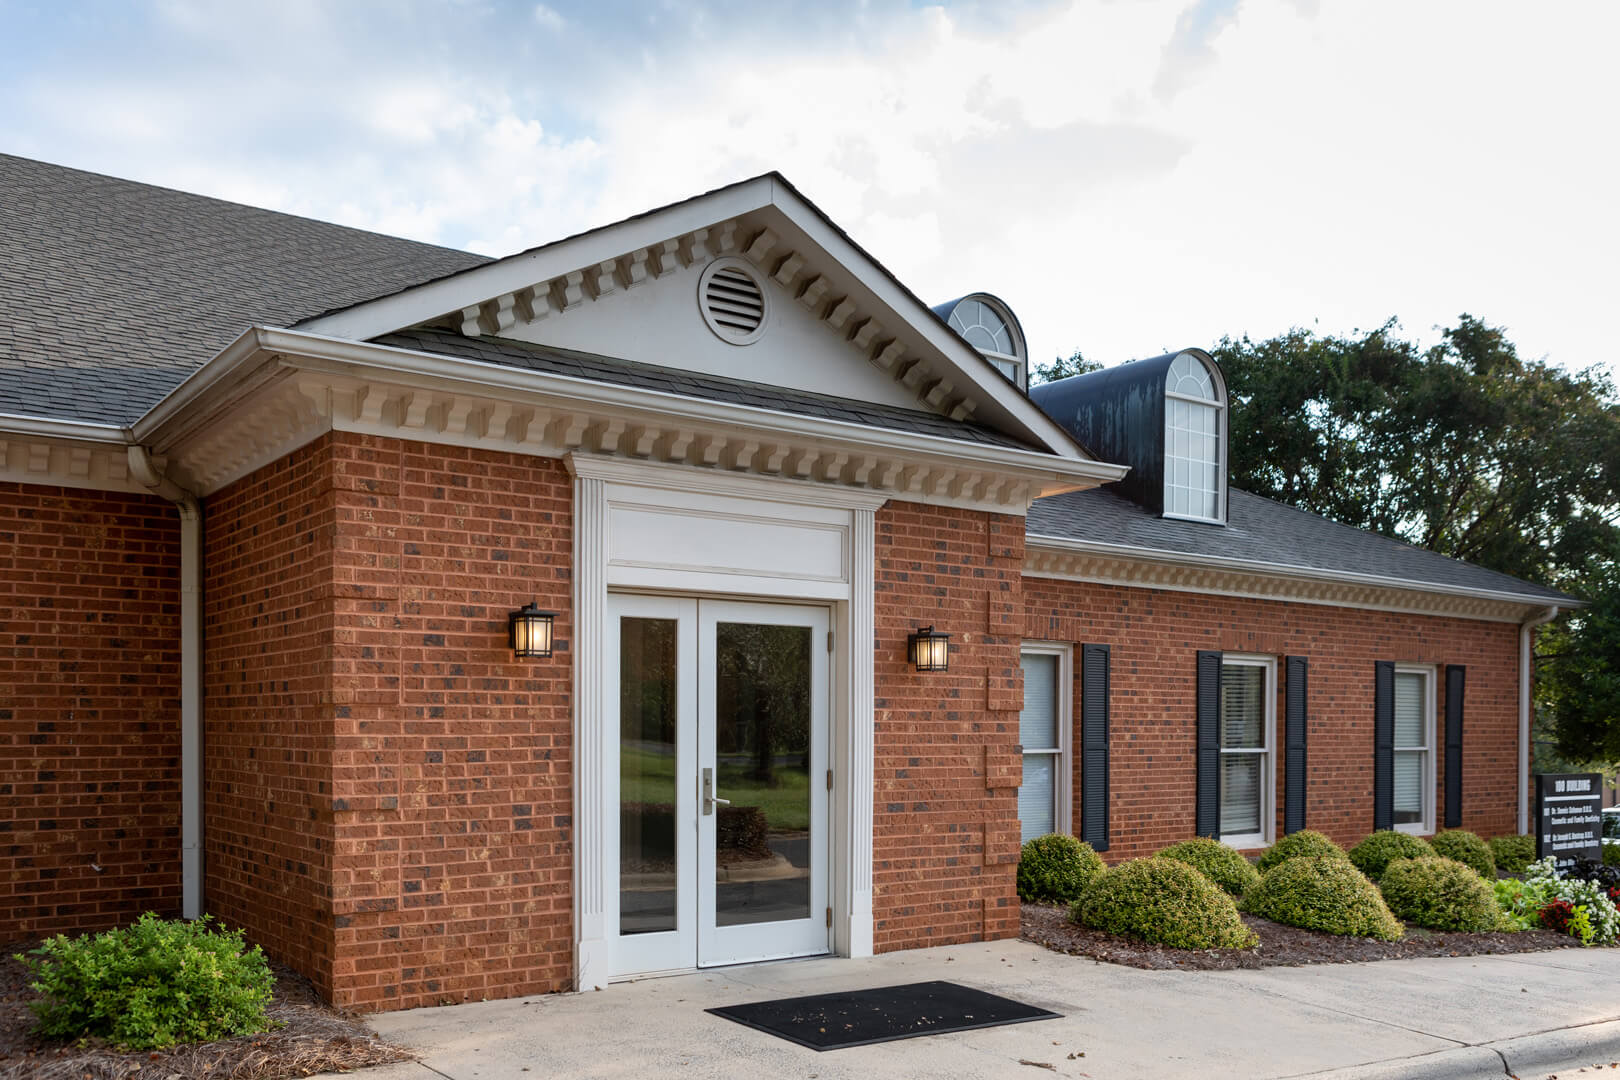 Dennis J Coleman DDS - Family & Cosmetic Dentistry reviews | Cosmetic Dentists at 460 S Main St Ste 101 - Davidson NC